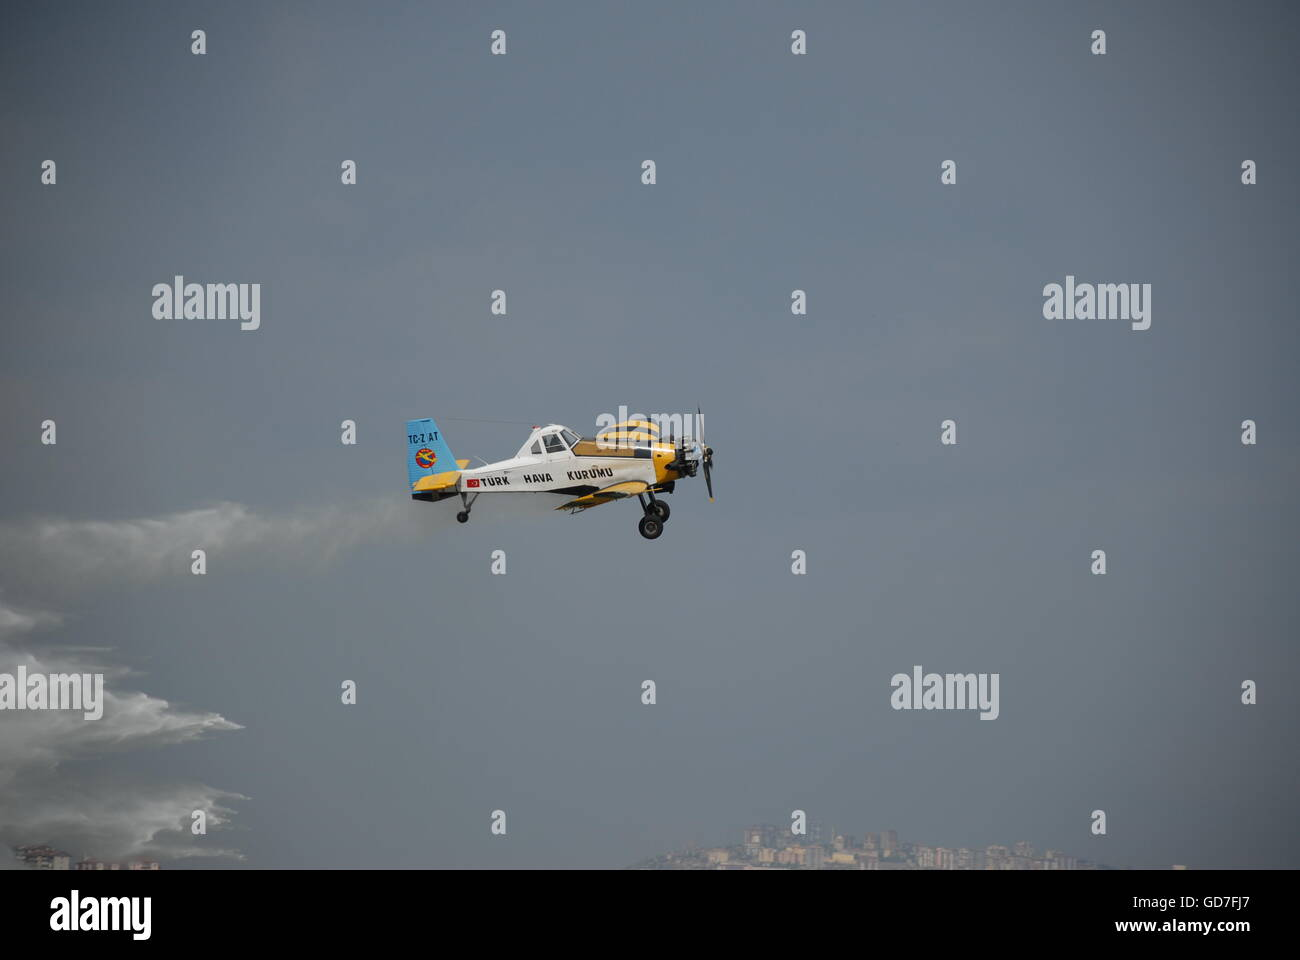 Pezetel PZL-M18 Dromader Firefighter Aircraft during the water dump mission over Etimesgut Airport - Stock Image